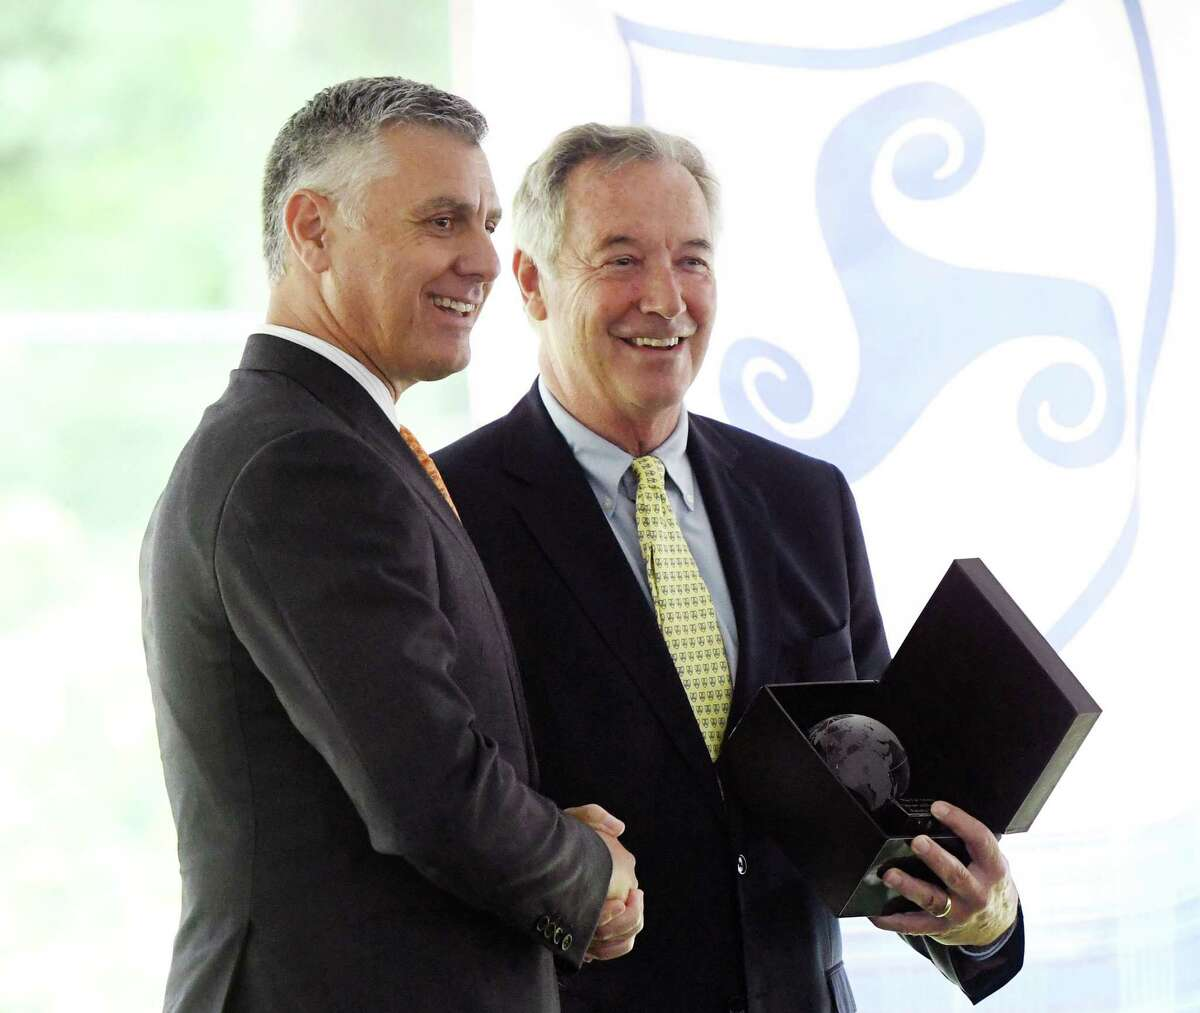 Greenwich Country Day Head of School Adam Rohdie, left, is presented with a gift from Stanwich Head of School Charles Sachs at the 2018-2019 Closing Ceremony at Stanwich School in Greenwich, Conn. Tuesday, June 11, 2019. The ceremony urged students not to forget the lessons they've learned at Stanwich, as the school will merge with Greenwich Country Day School next year.